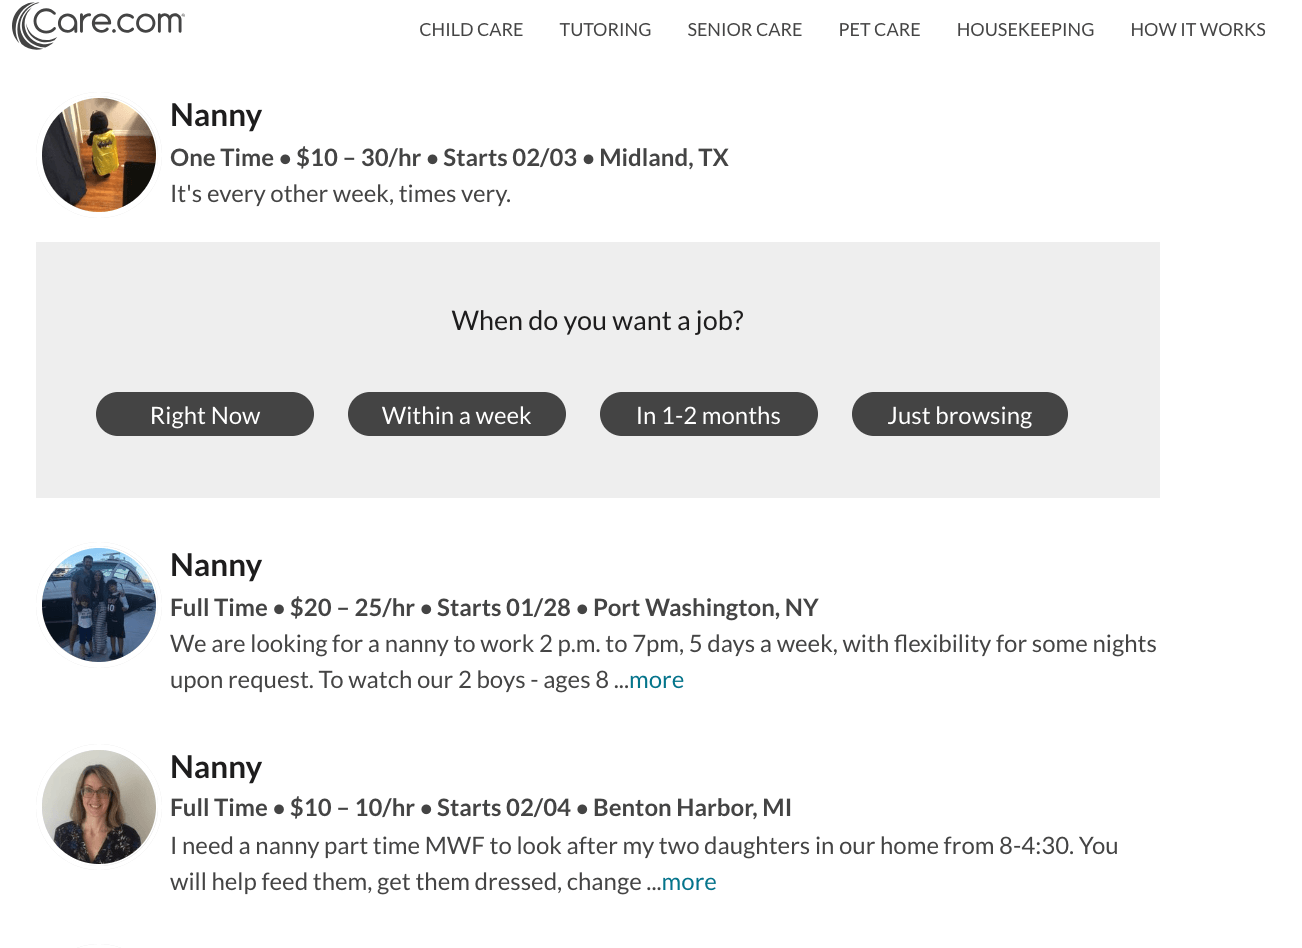 How to List or Apply to Care.com Nanny Jobs: Updated for 2019 - When do you want a job